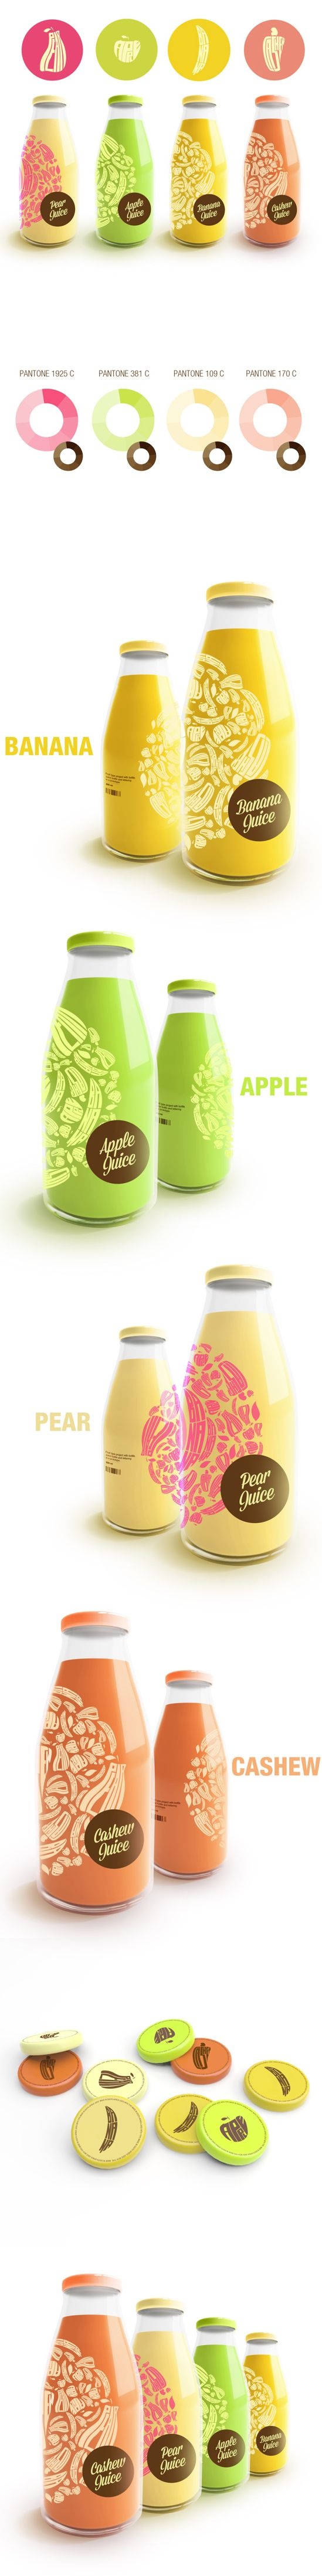 Packaging Project by Renan Vizzotto. The illustrations really help differentiate each flavor without loosing its wit.